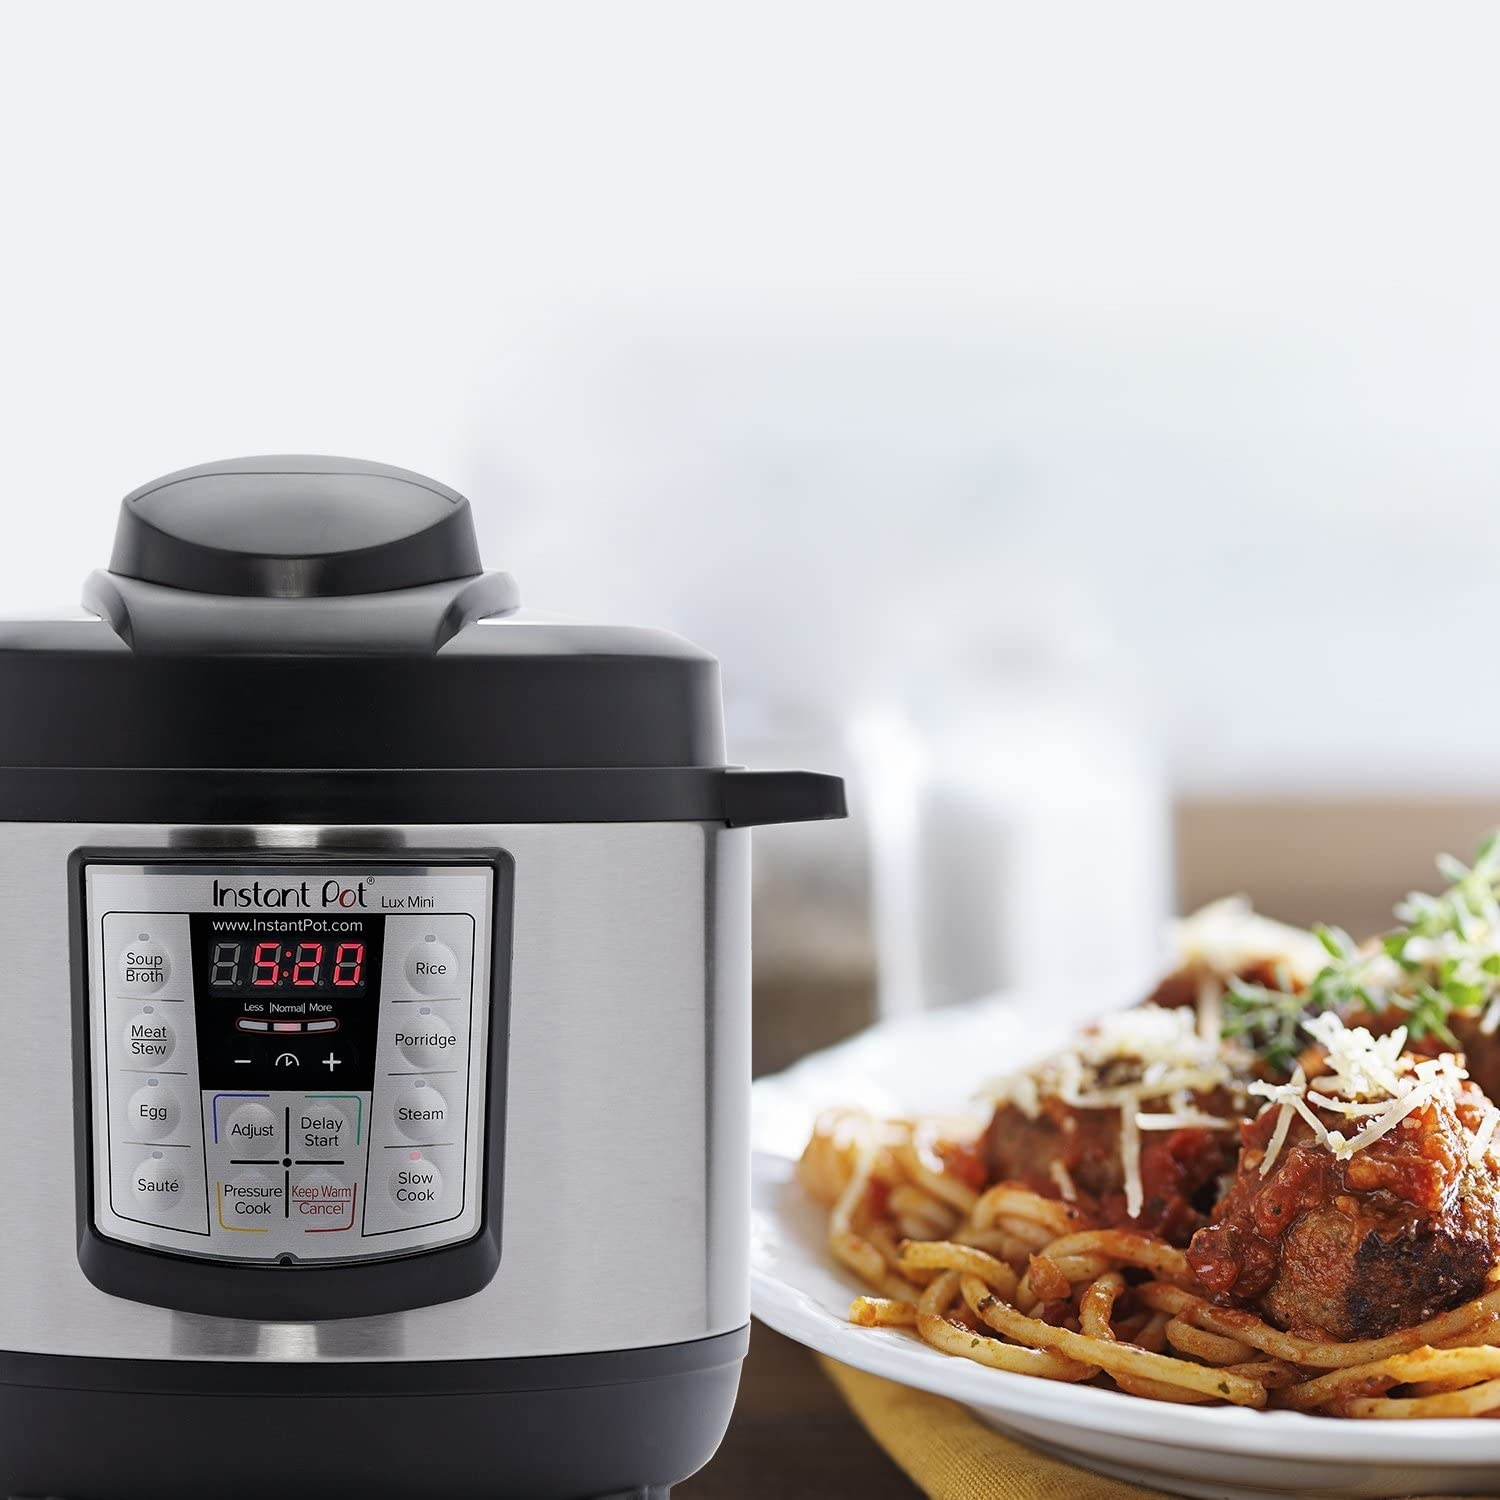 the instant pot lux mini next to a plate of spaghetti and meatballs